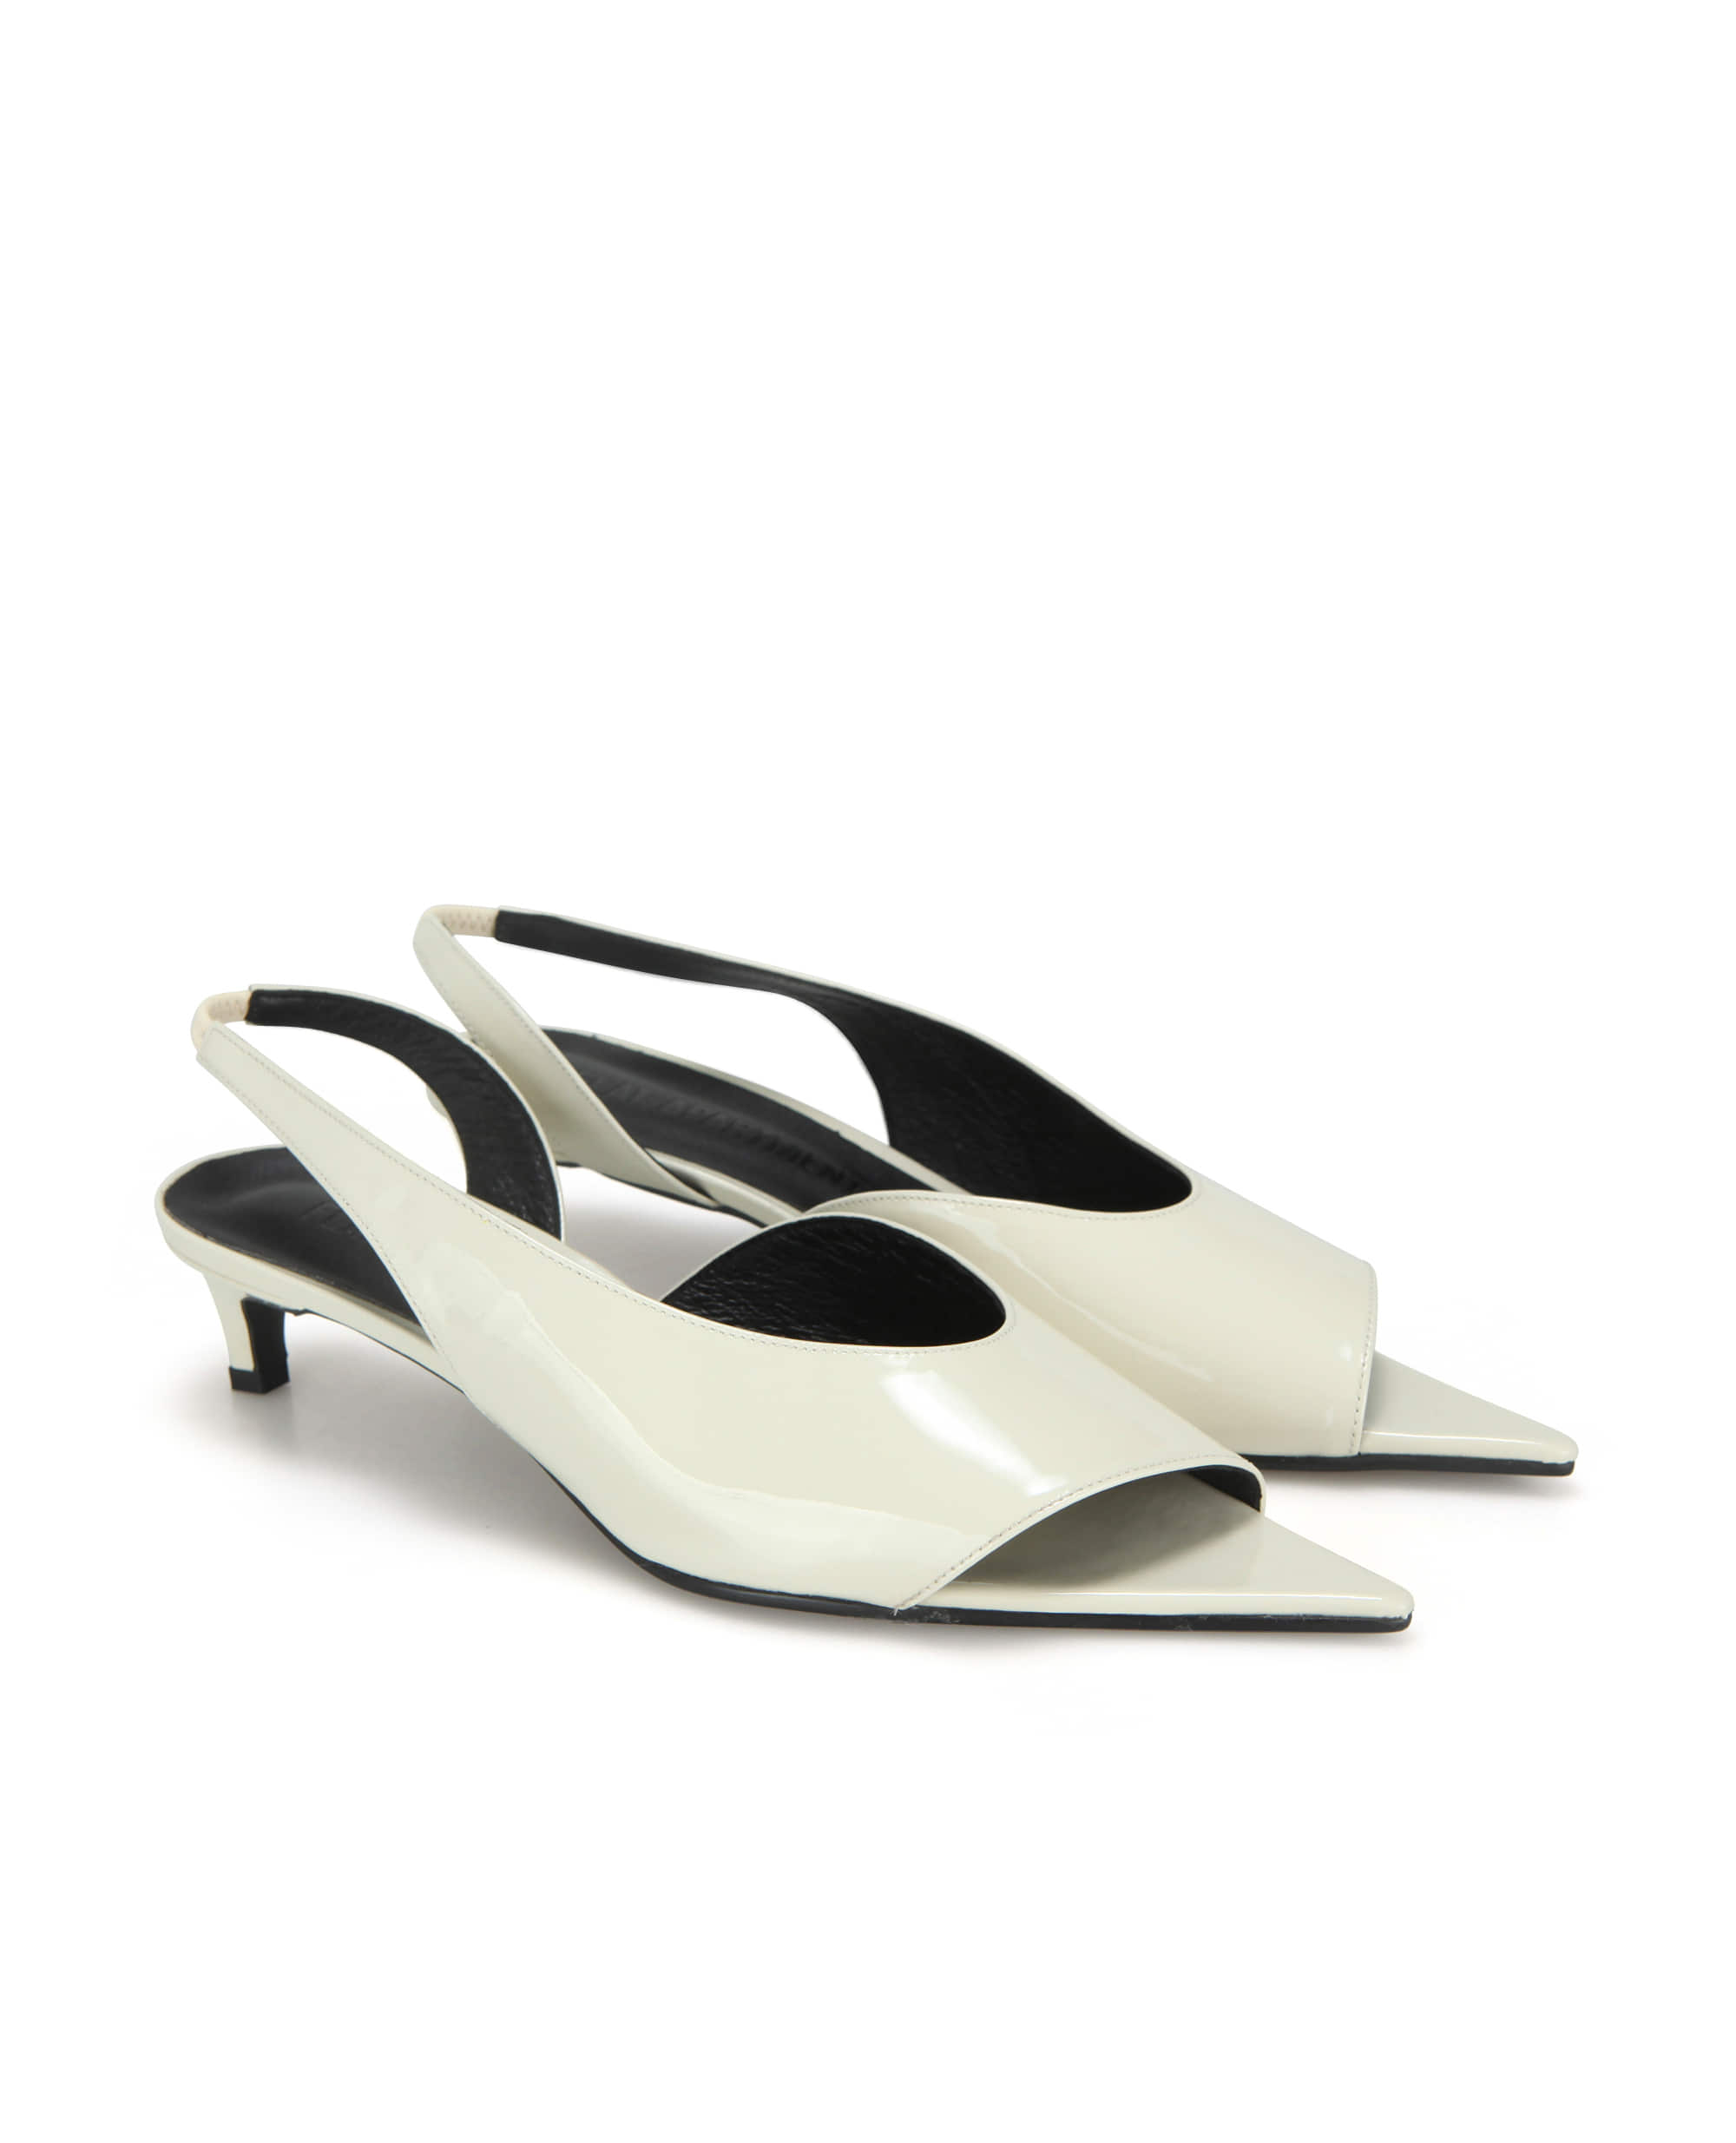 Extreme sharp toe diagonal lined slingbacks | Glossy butter